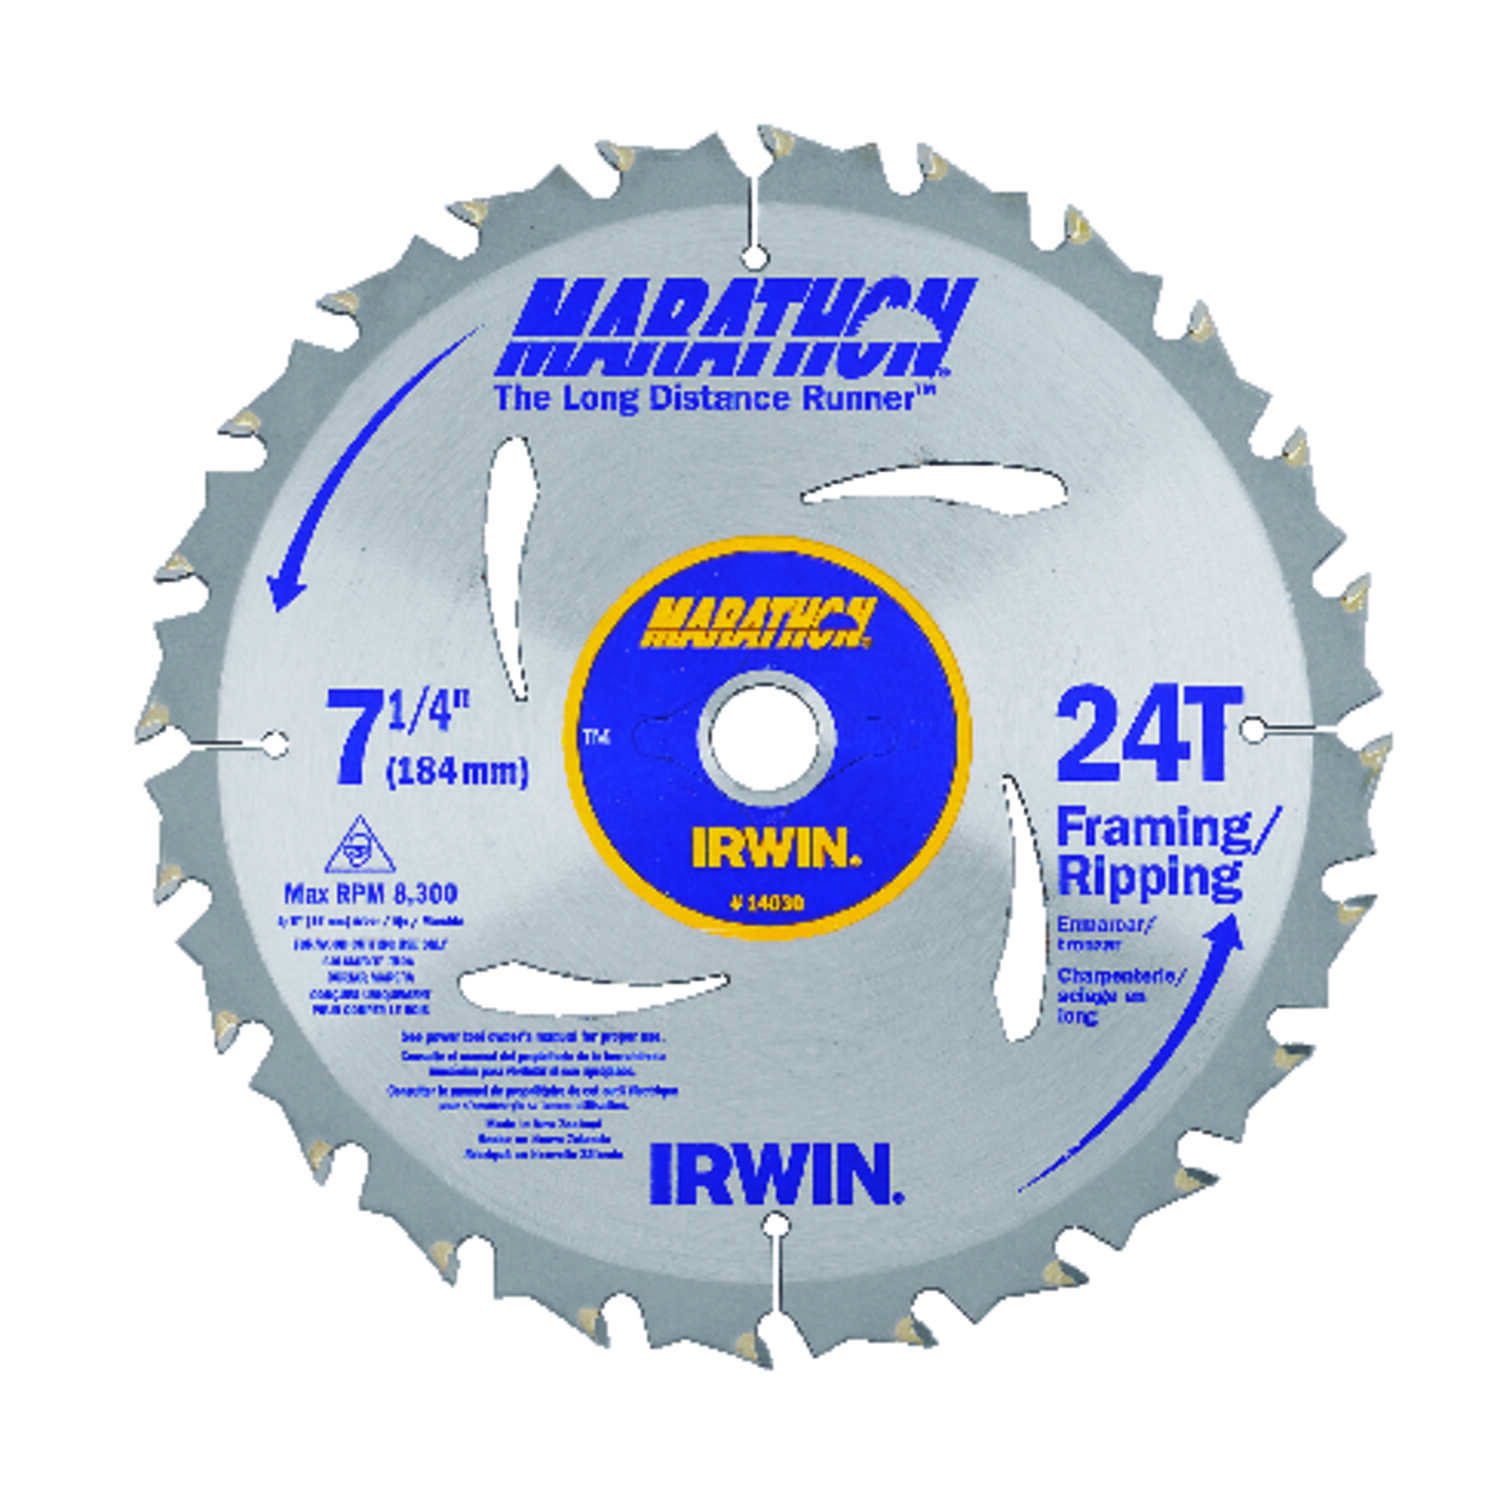 Irwin  Marathon  7-1/4 in.  Dia. x 5/8 in.  Carbide  Circular Saw Blade  24 teeth 1 pk